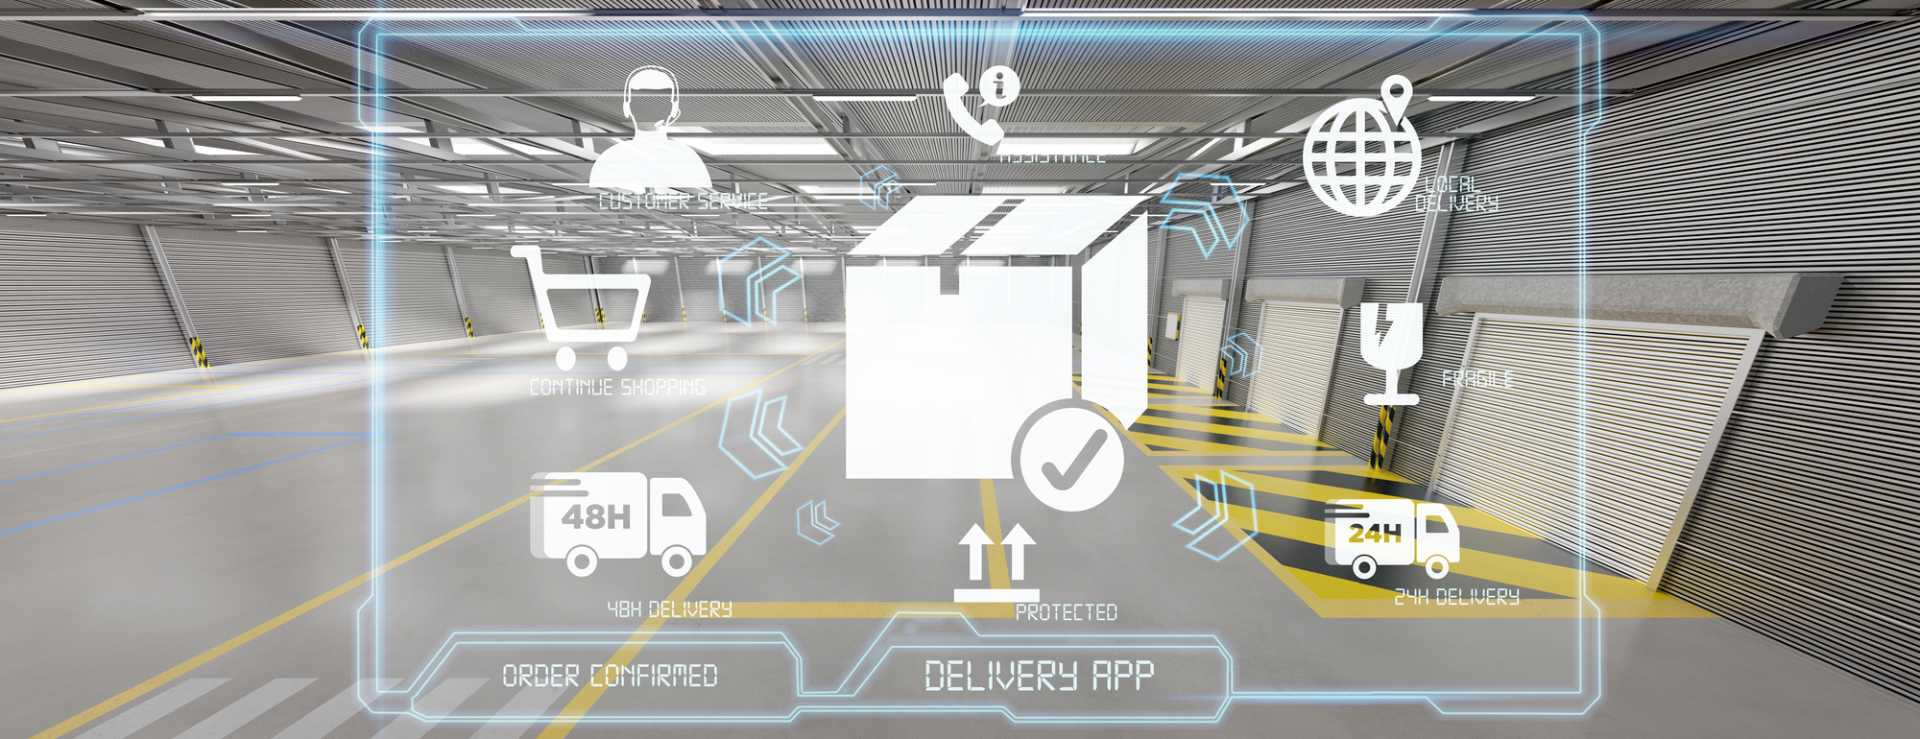 View of a Logistic delivery service application on a warehouse background 3d rendering - image courtesy of Depositphotos.